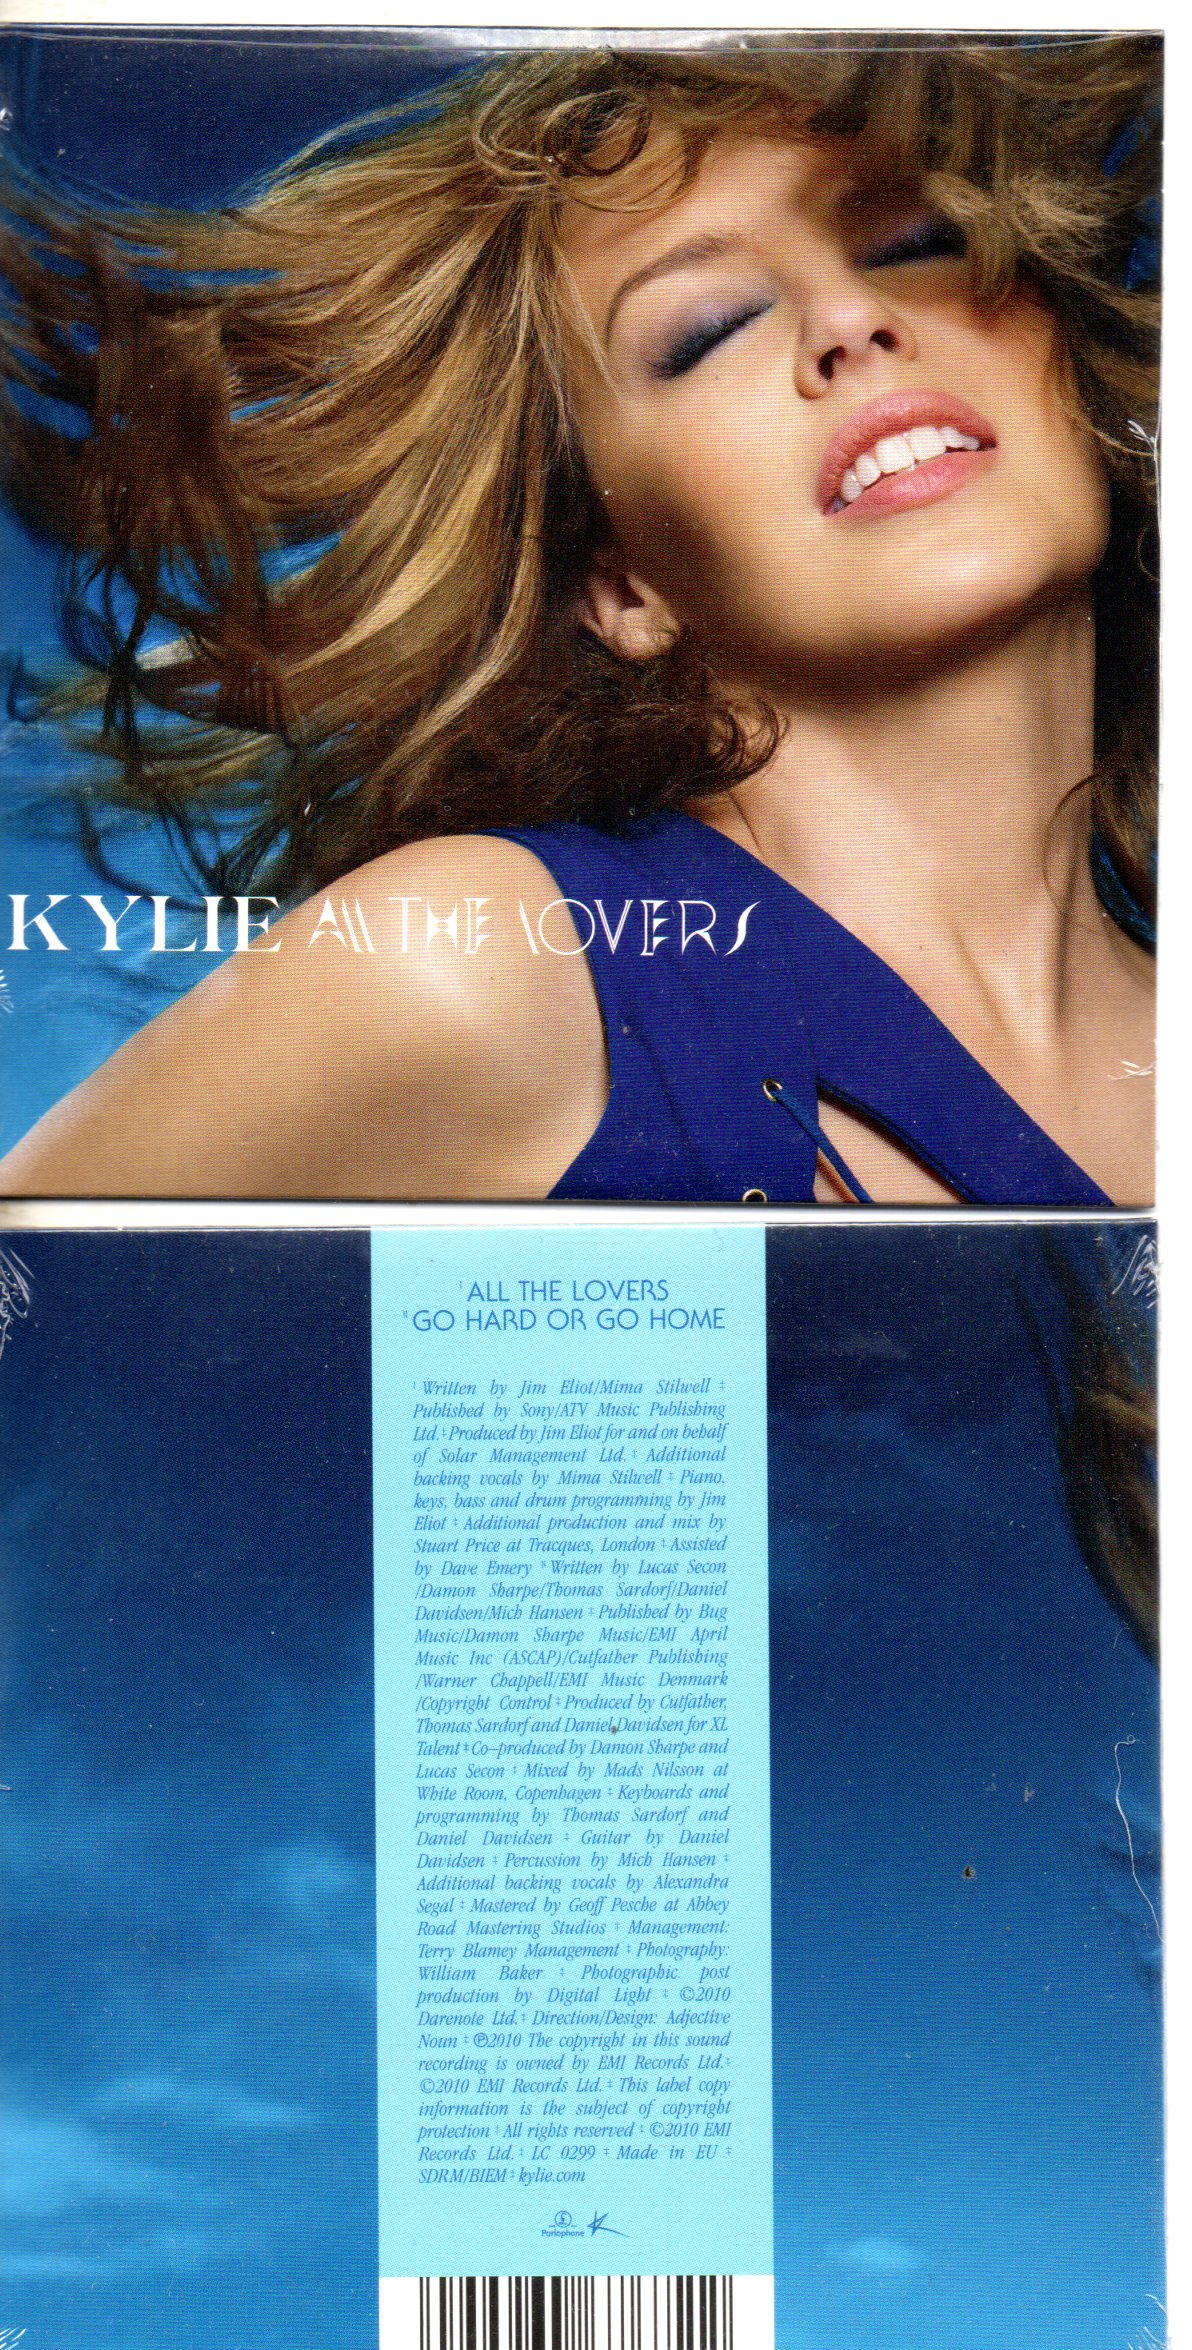 KYLIE MINOGUE - All the lovers 2-track CARD SLEEVE - CD single